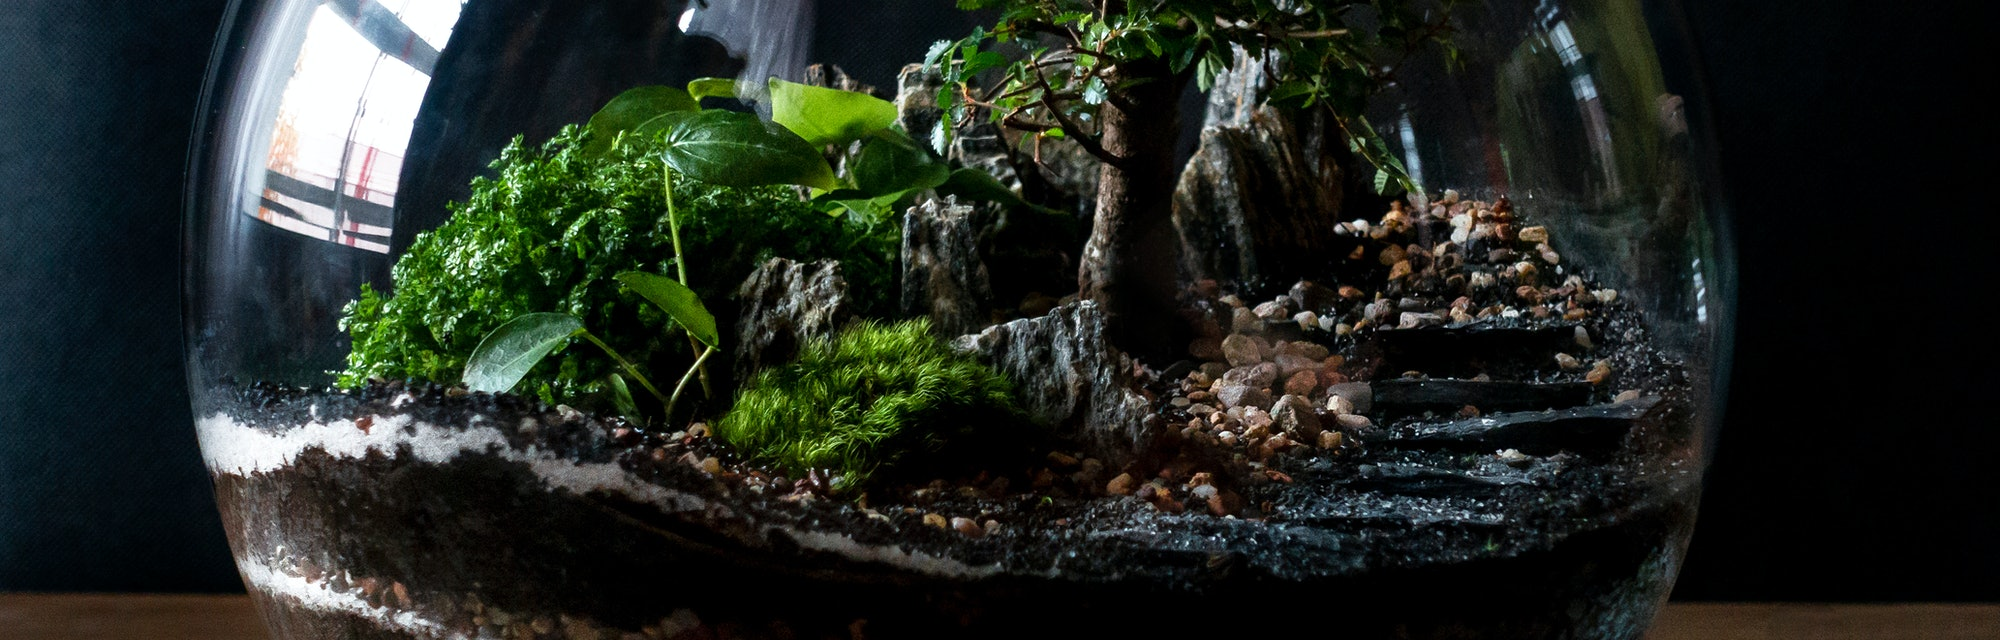 Small decoration plants in a glass bottle/garden terrarium bottle/ forest in a jar. Terrarium jar with piece of forest with self ecosystem. Save the earth concept